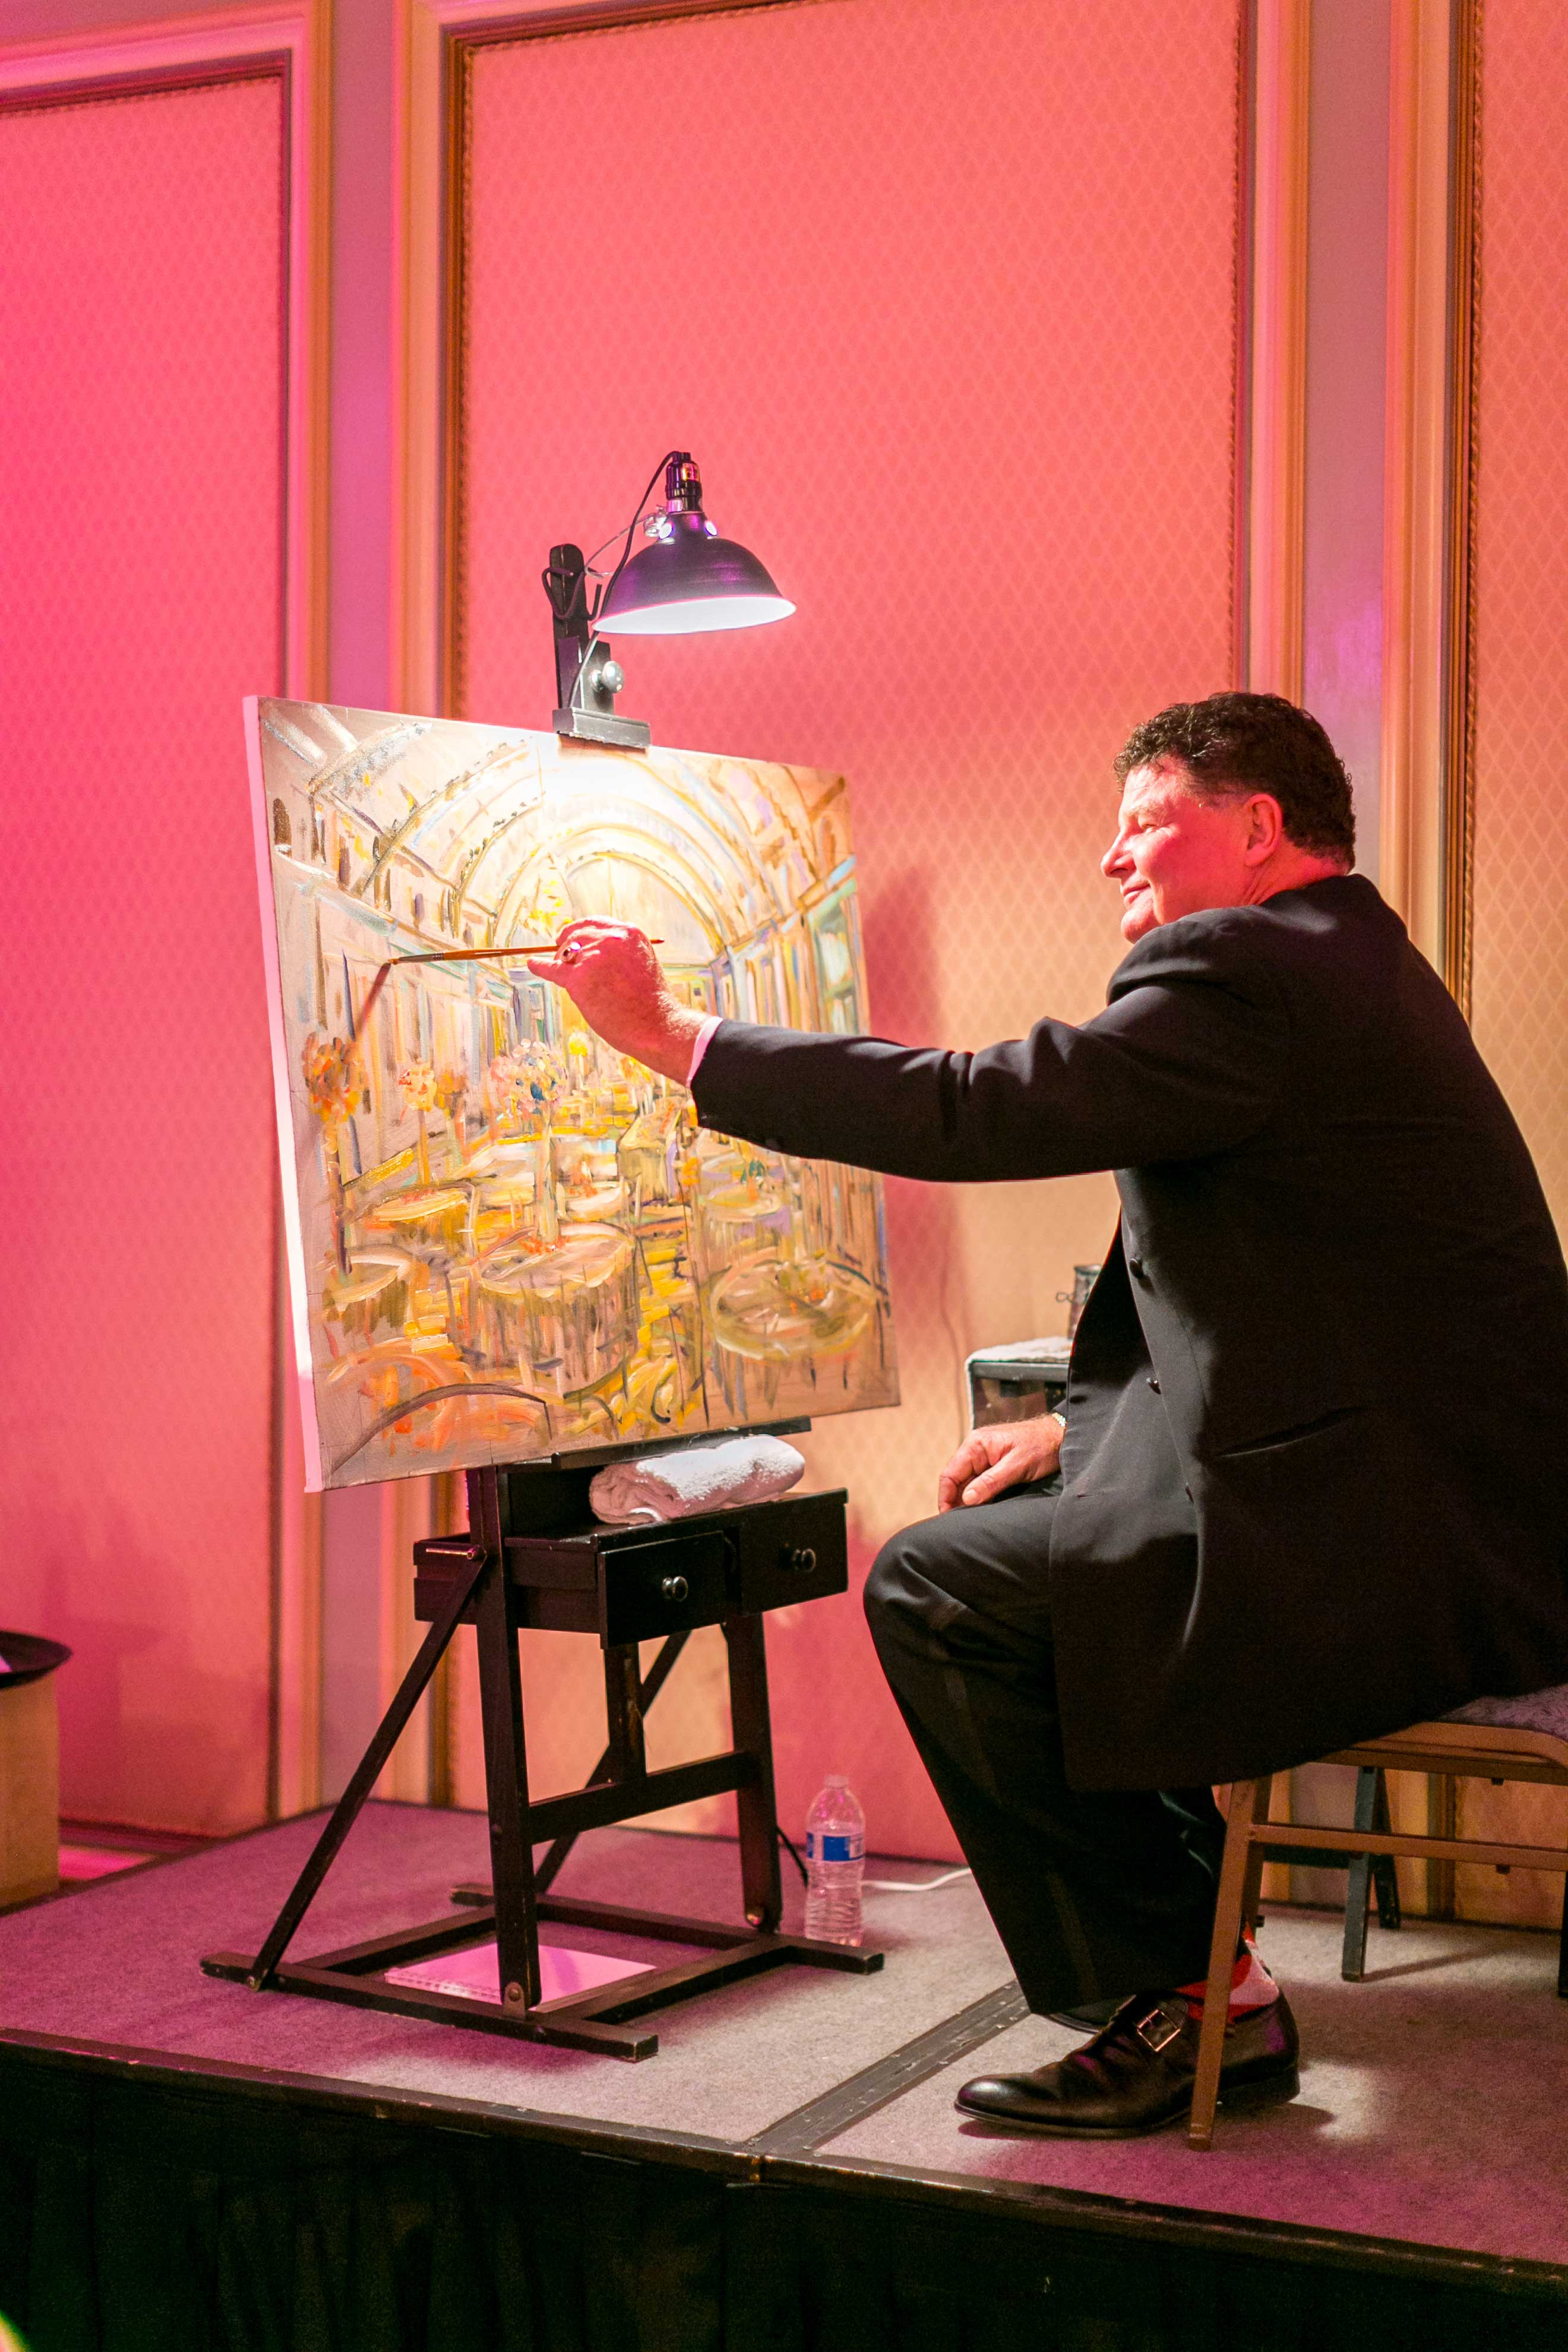 artist paints wedding reception vow renewal from a stage